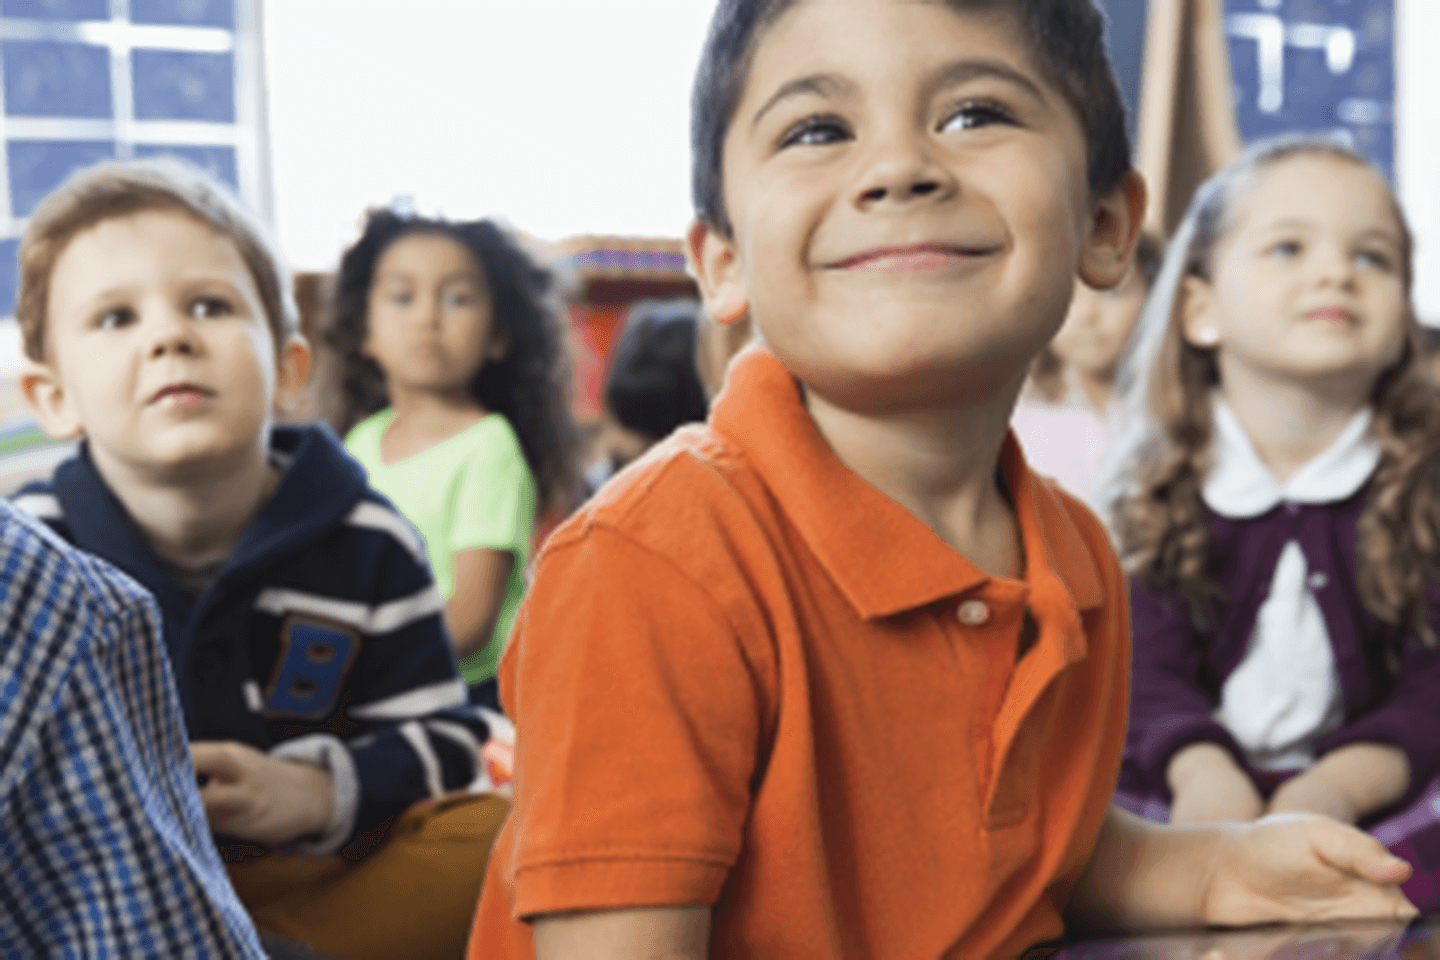 Teach social–emotional skills in the classroom